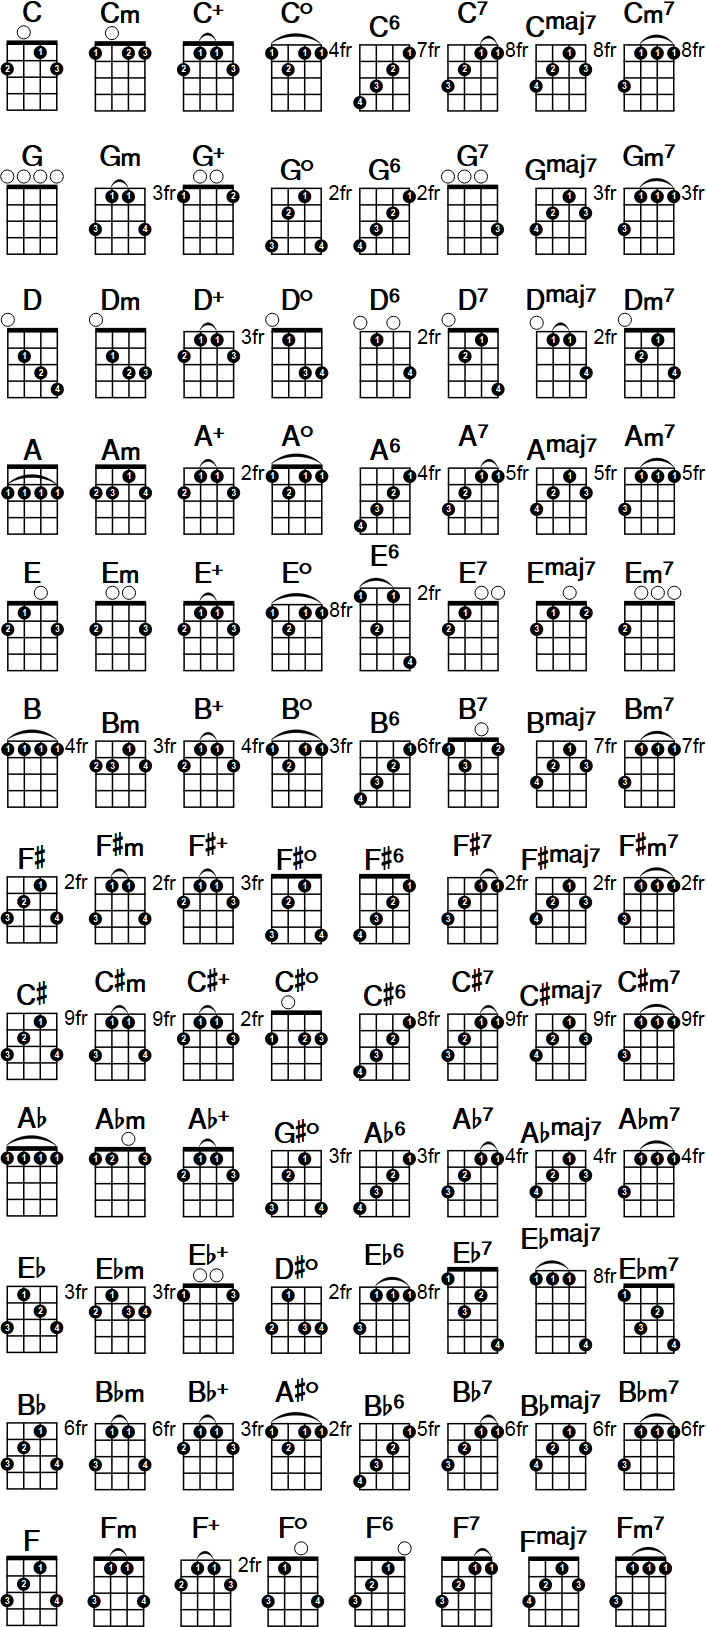 Pin By Liv Madia On Music Pinterest Banjo Guitar Chords And Guitar